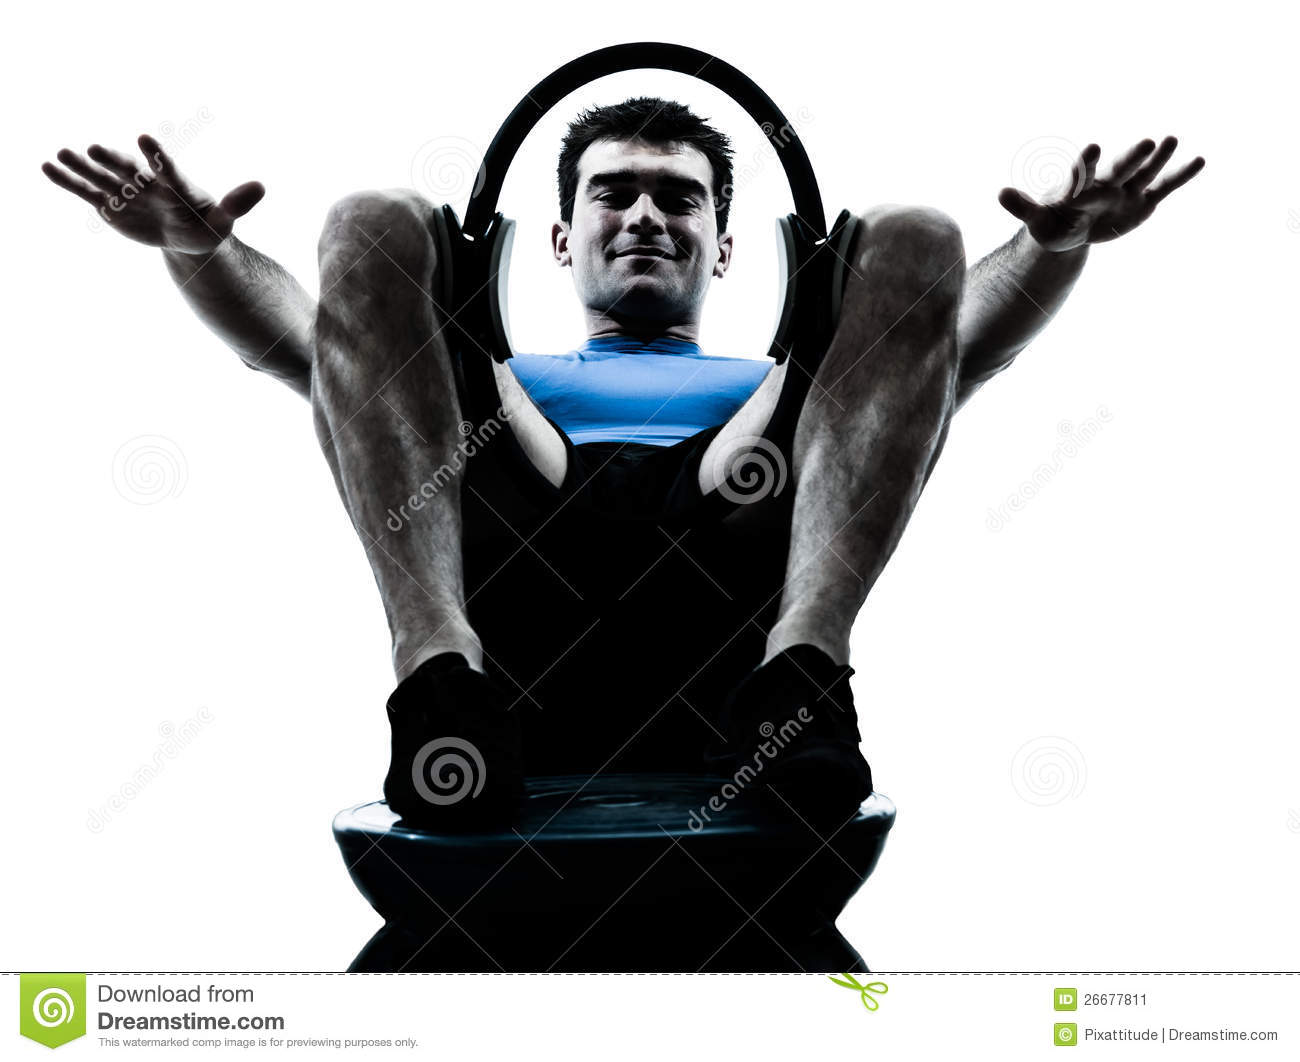 Man exercising ring workout fitness posture